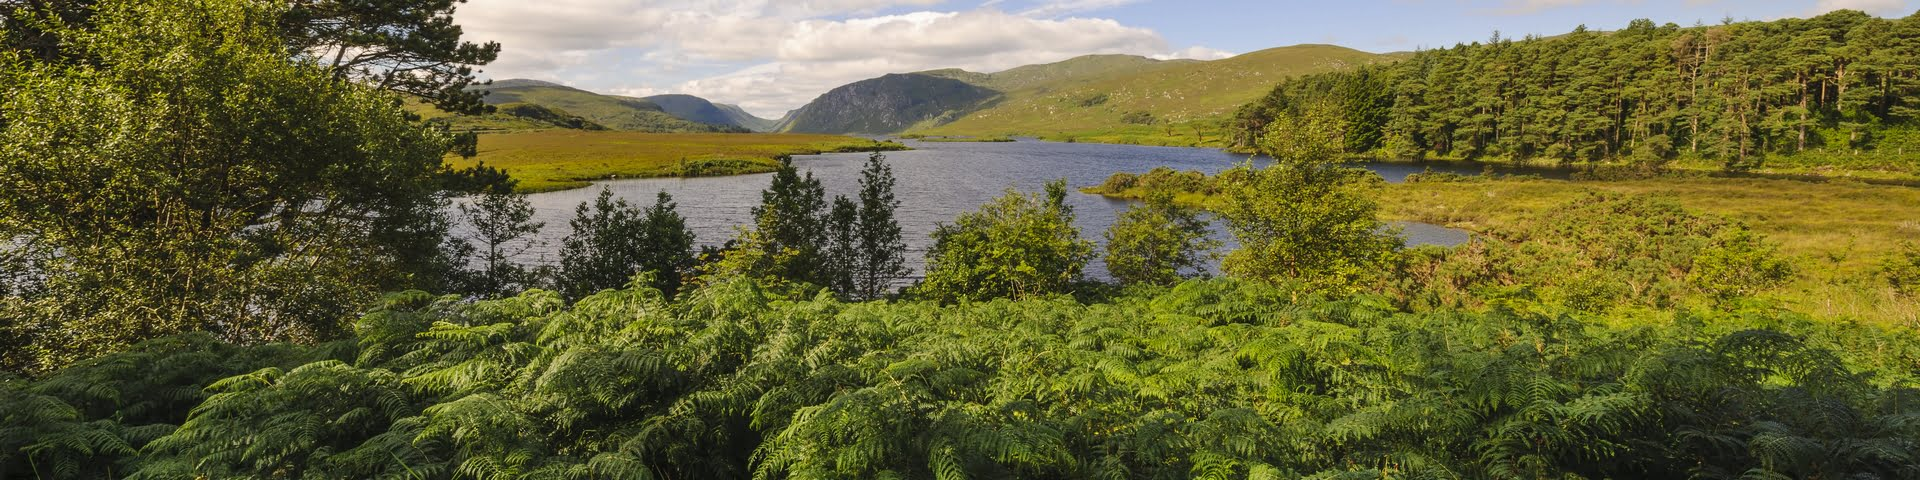 Wild Atlantic Websites - see the wood for the trees